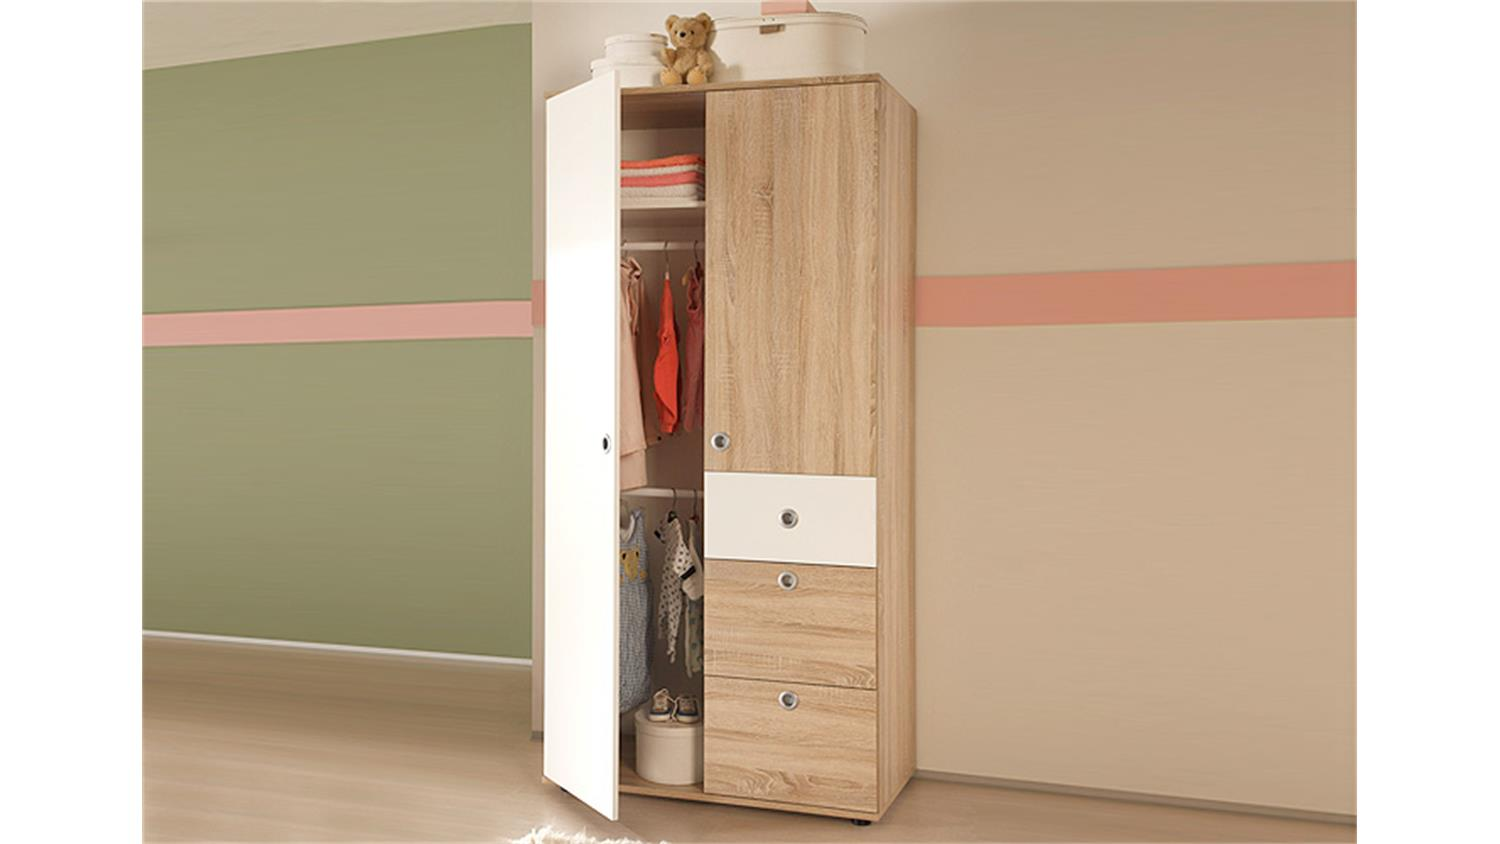 kleiderschrank wiki sonoma eiche nb wei 2 trg. Black Bedroom Furniture Sets. Home Design Ideas